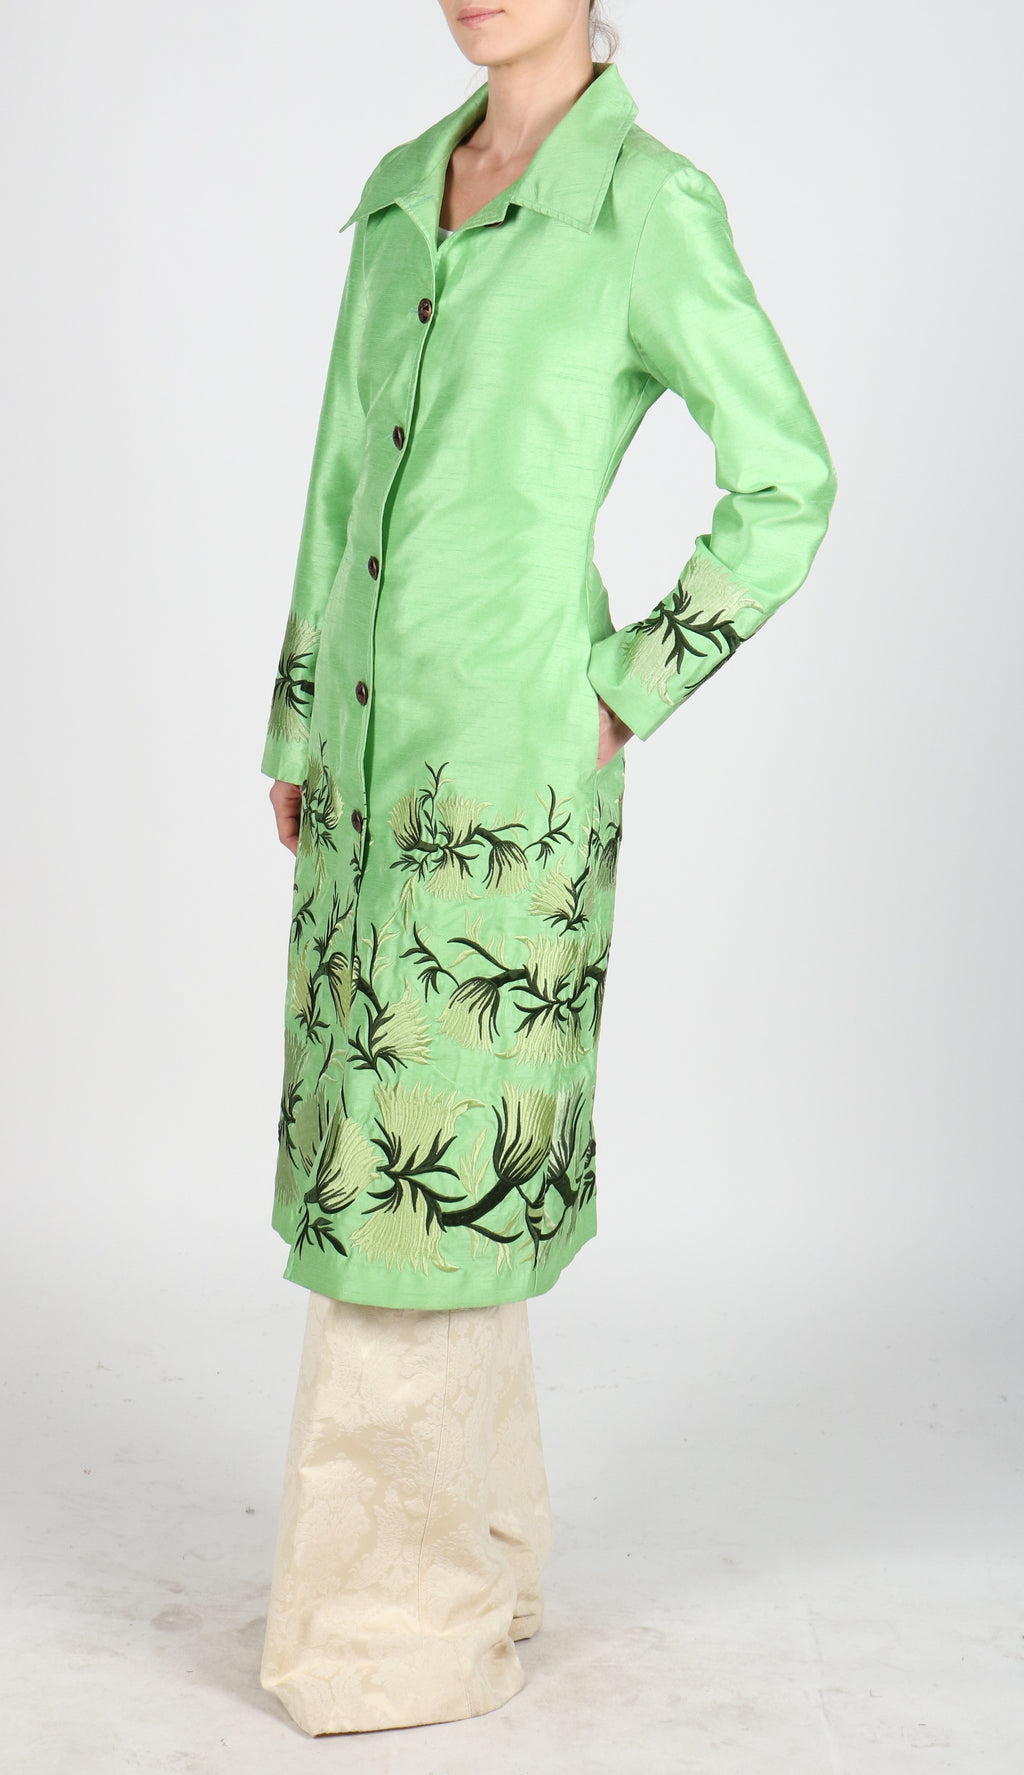 Fanm Mon VENIA Vyshyvanka Silk Jacket Embroidered Green Black Lime Floral Color Jacket